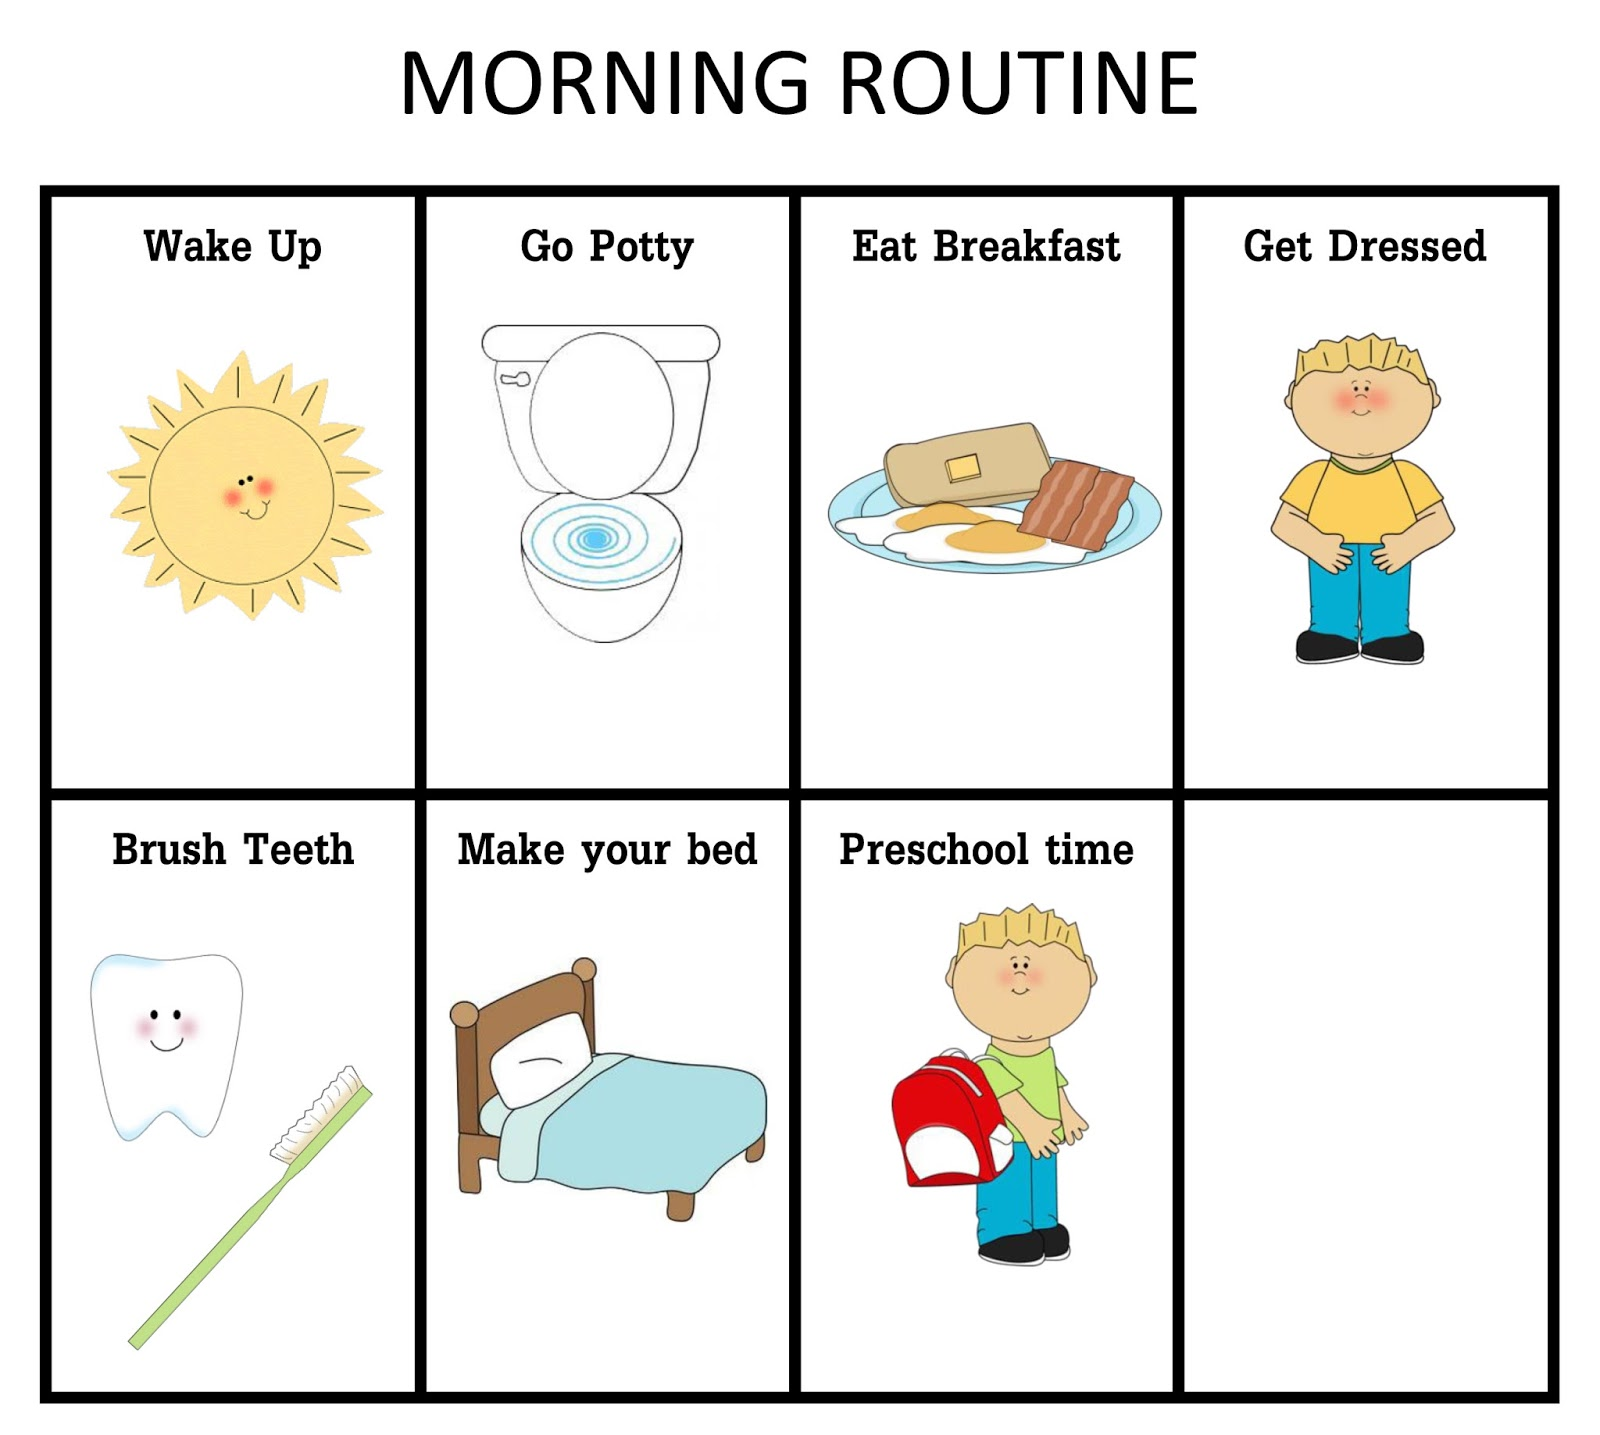 Morning clipart morning routine Ourhomecreations: Clip information Routine Free